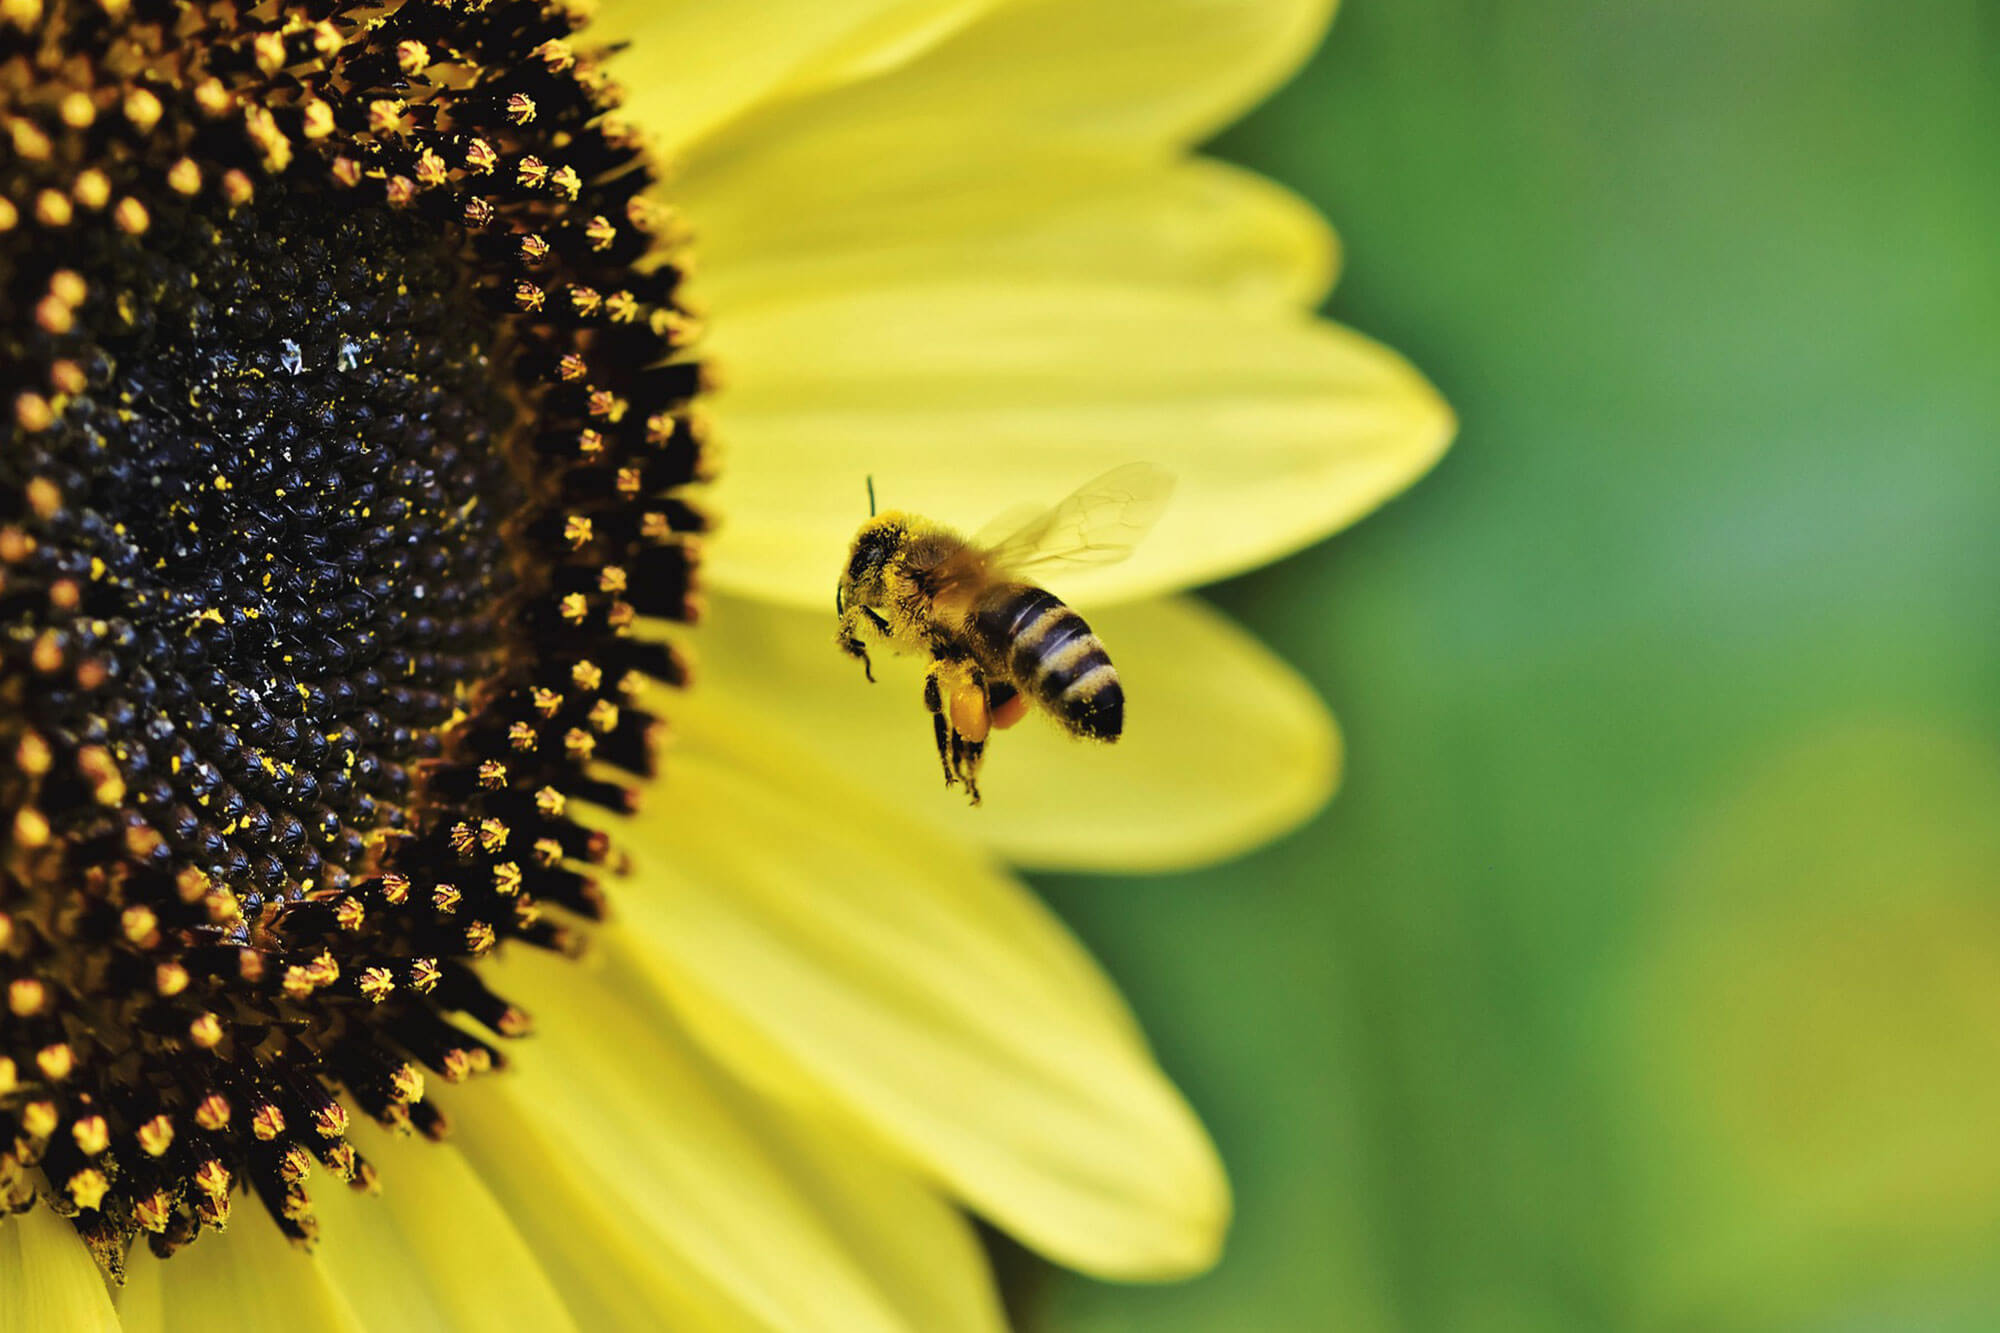 Bee flying towards a sunflower